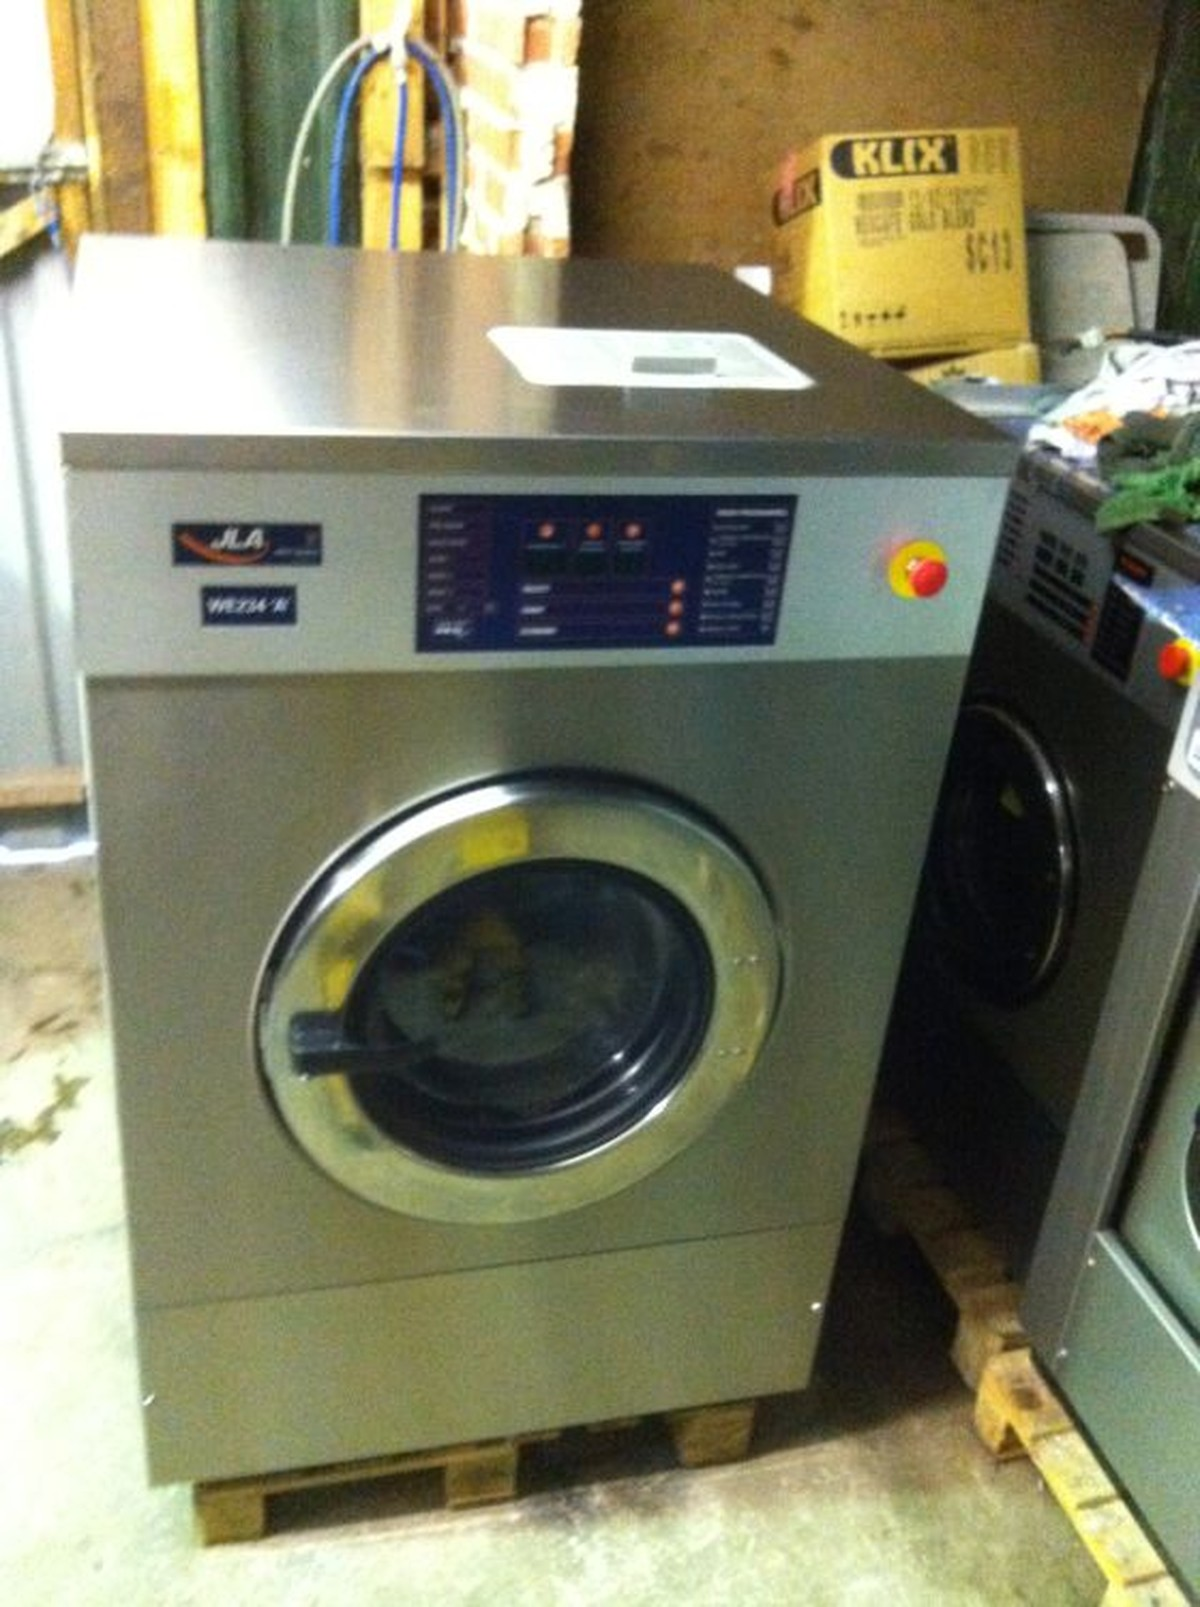 Secondhand Laundry Equipment Front Loading Washing